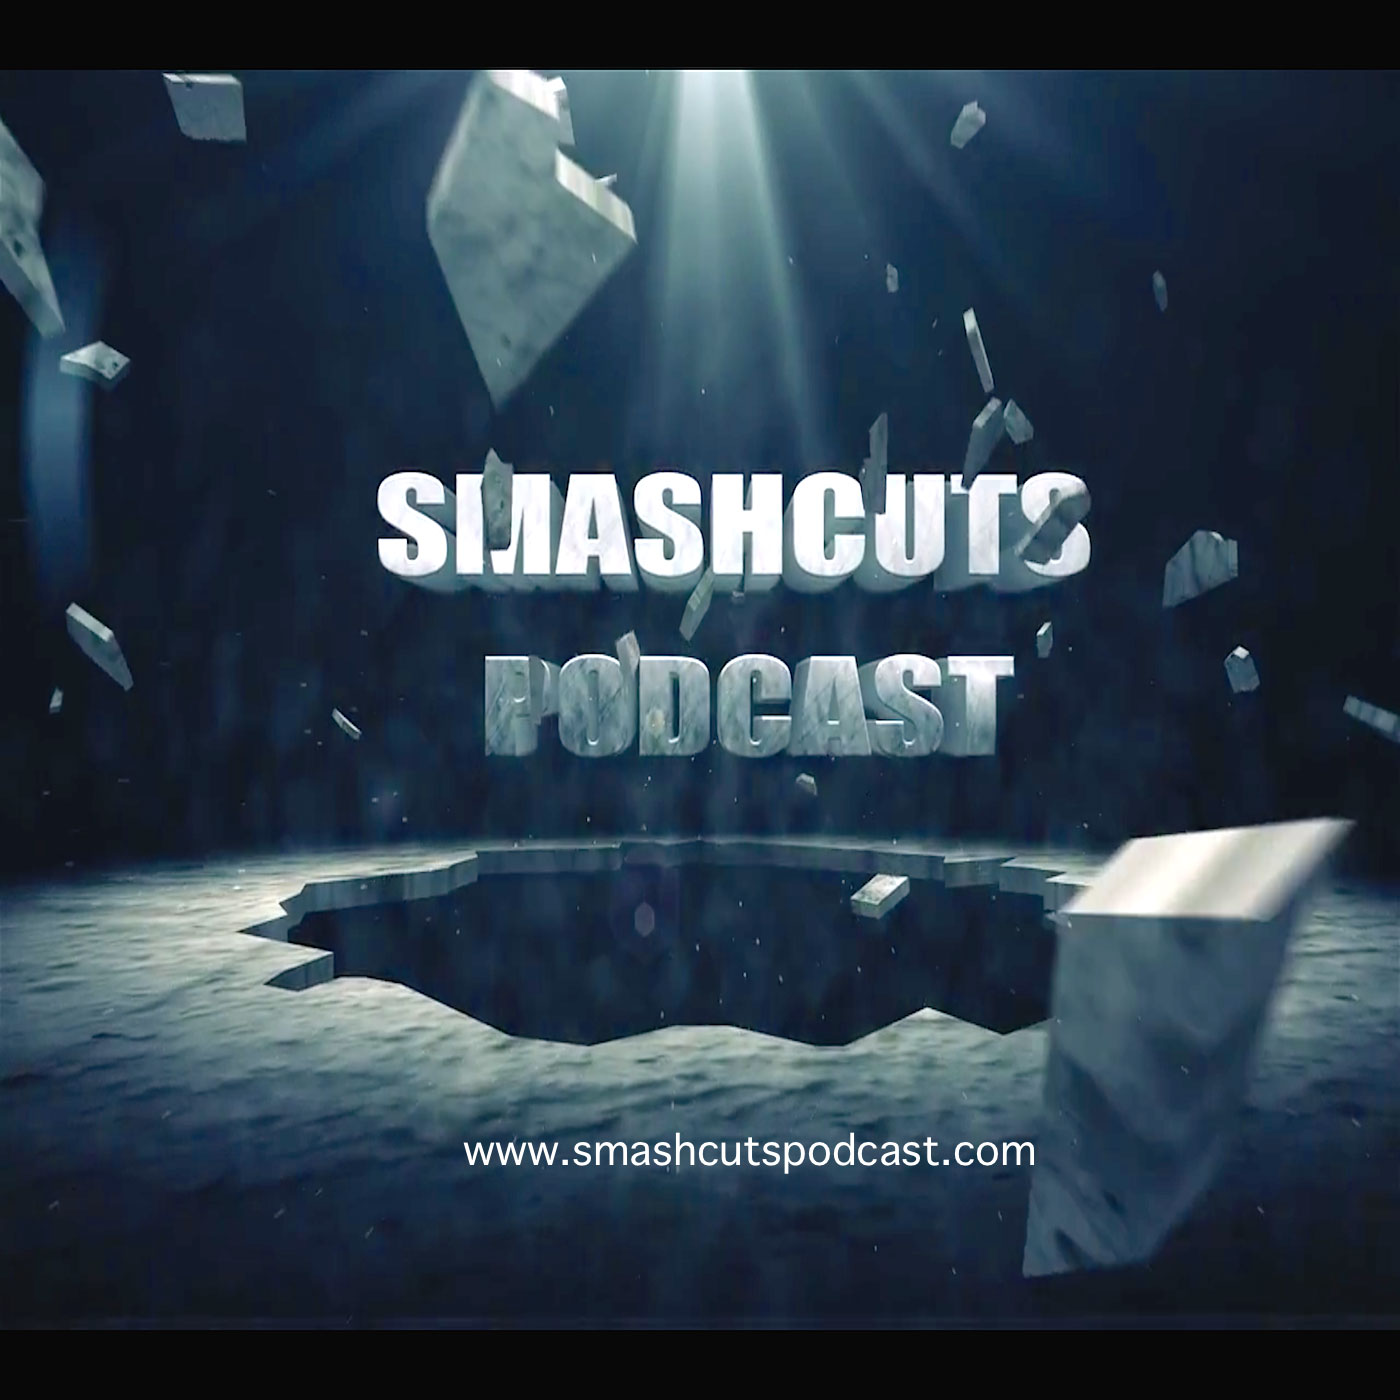 Smashcuts Podcast